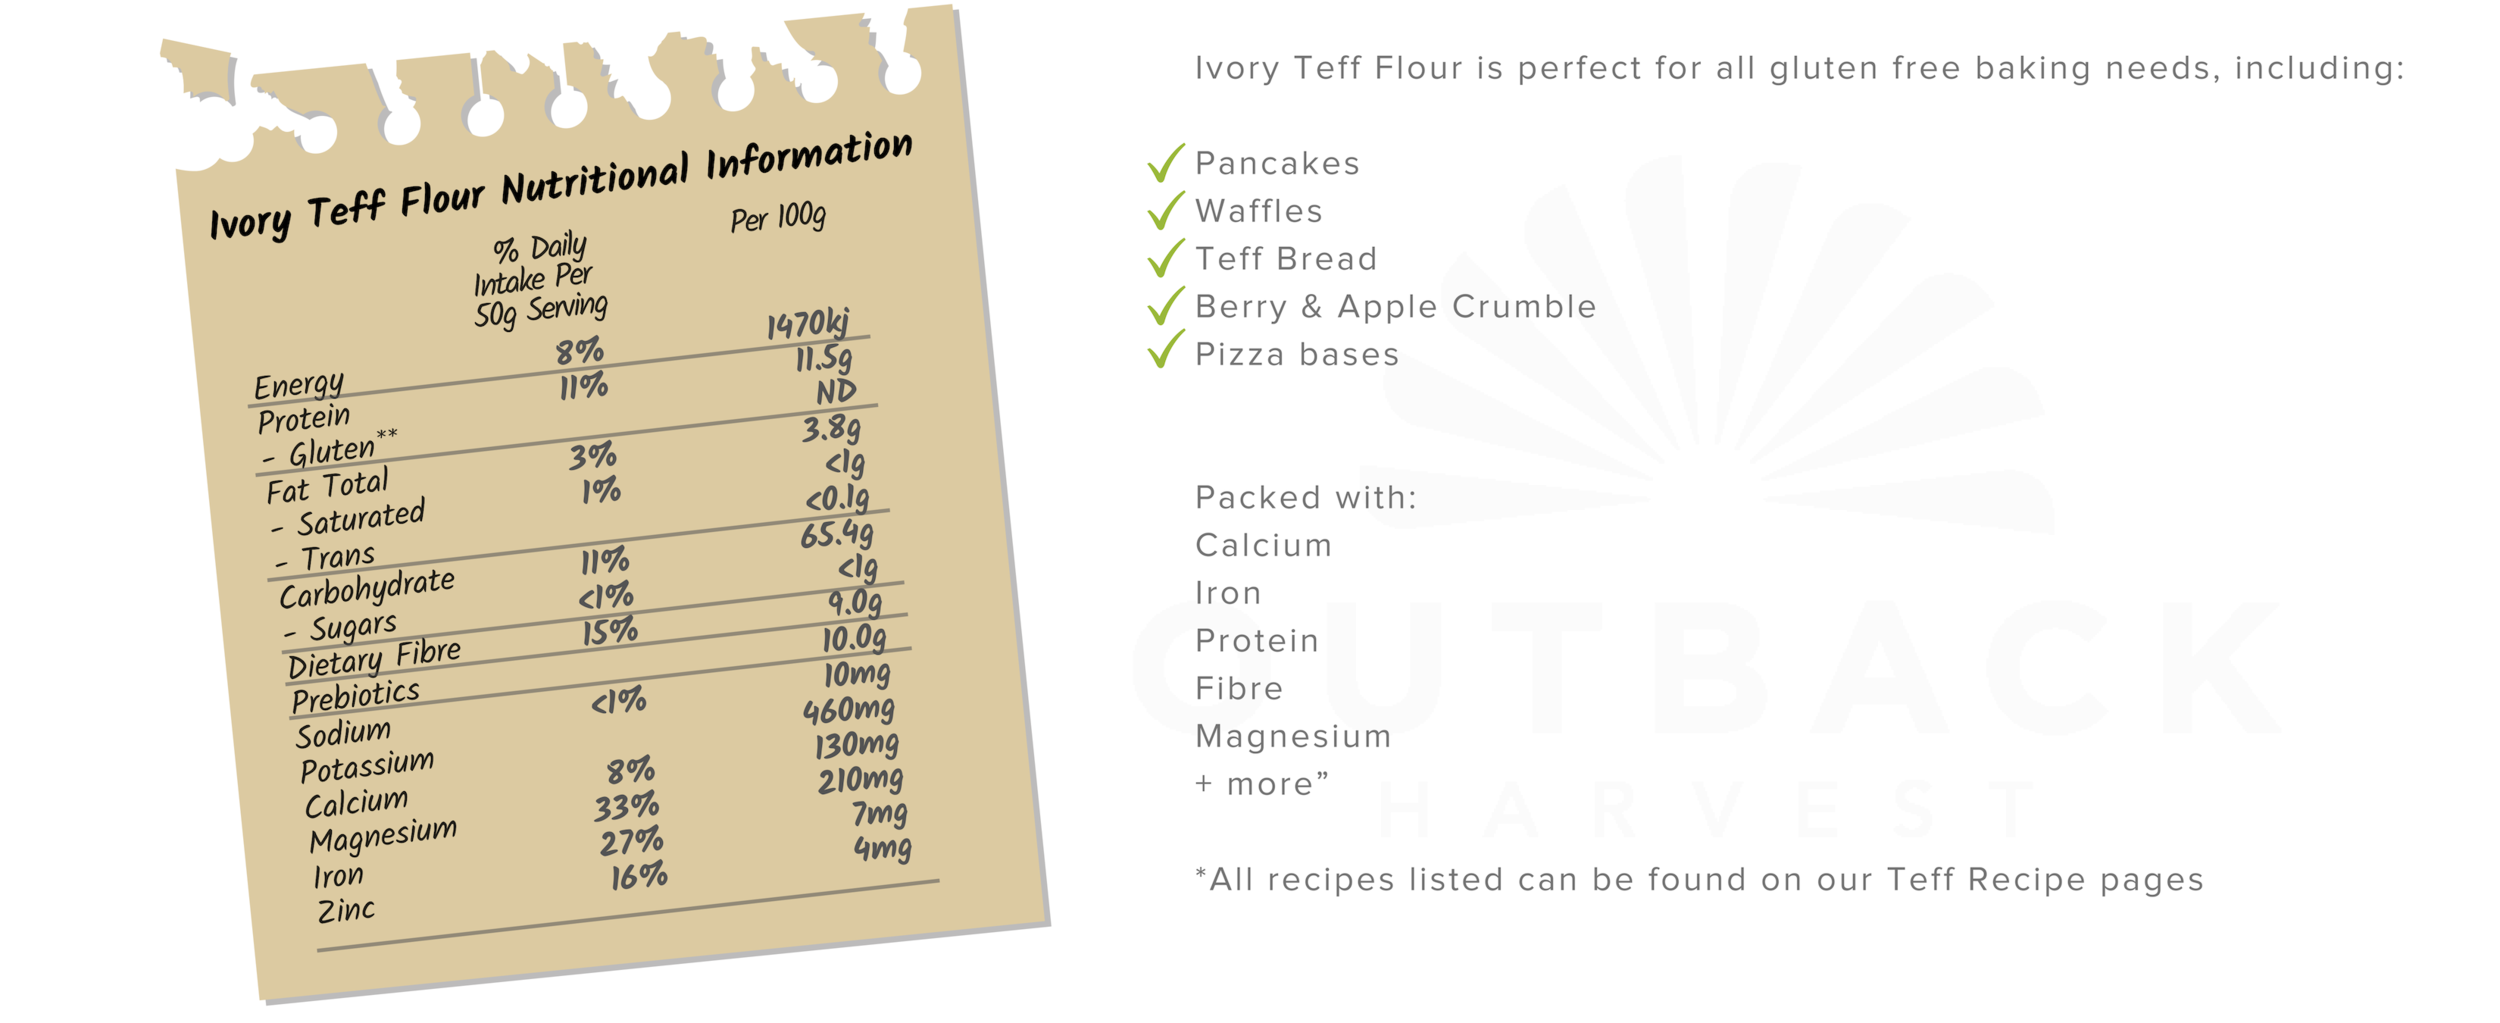 Ivory Teff Flour Facts